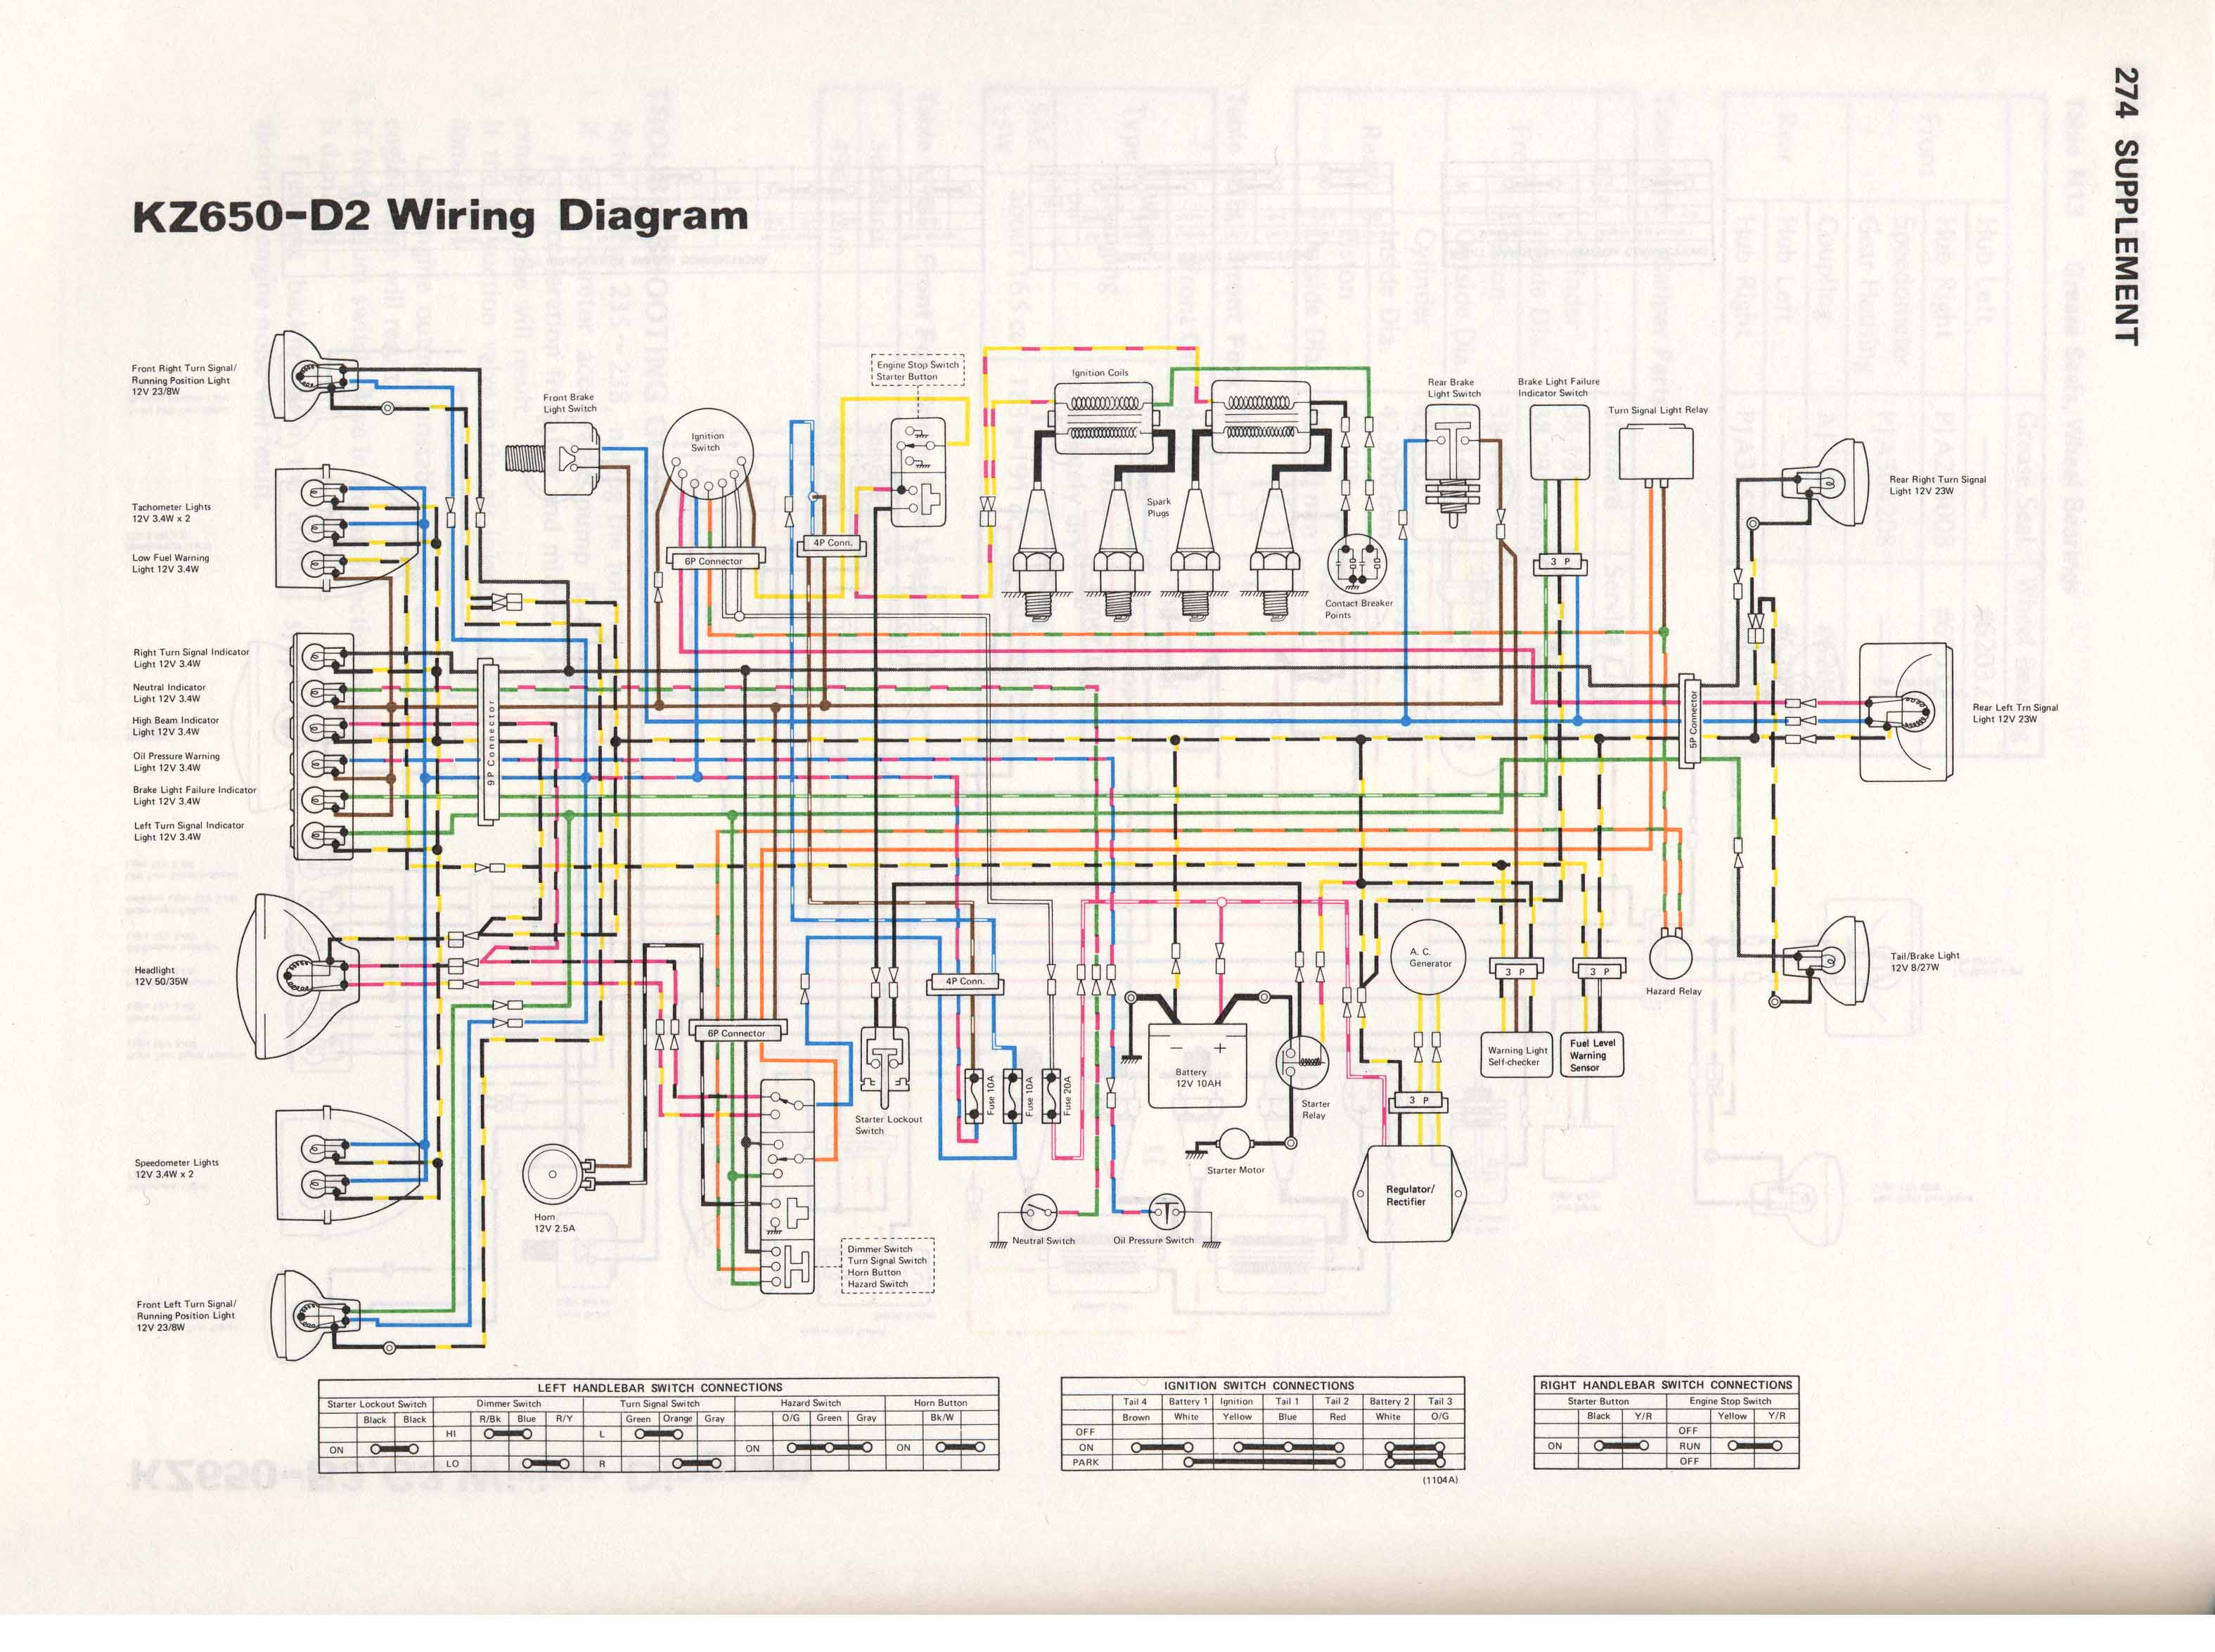 KZ650 D2 kz650 info wiring diagrams 1978 kawasaki kz650 wiring harness at alyssarenee.co